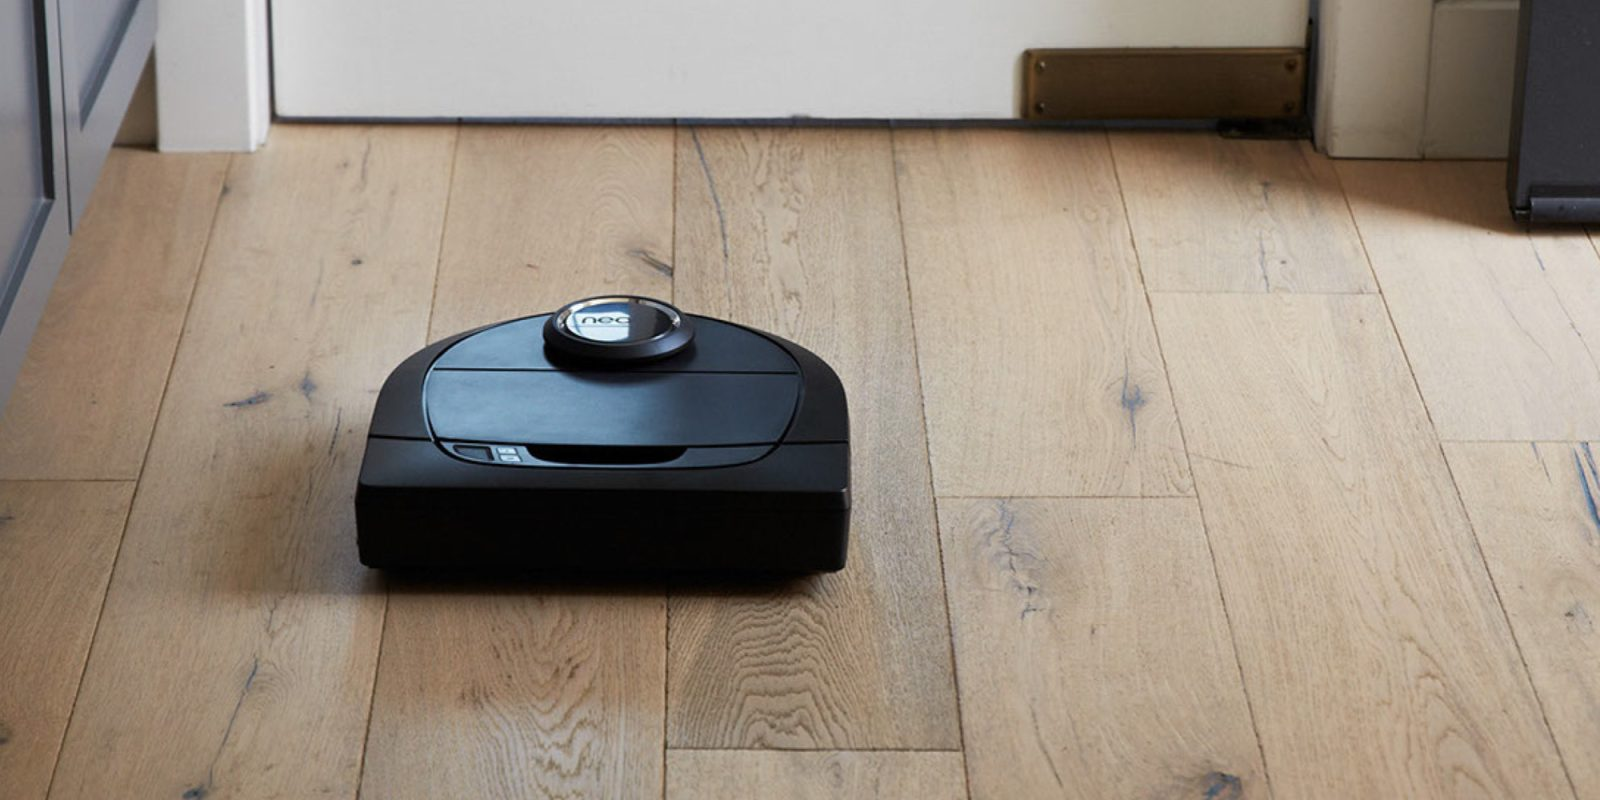 Laser-guided cleaning headlines Neato's $400 Botvac D5 Robot Vacuum ($200 off)